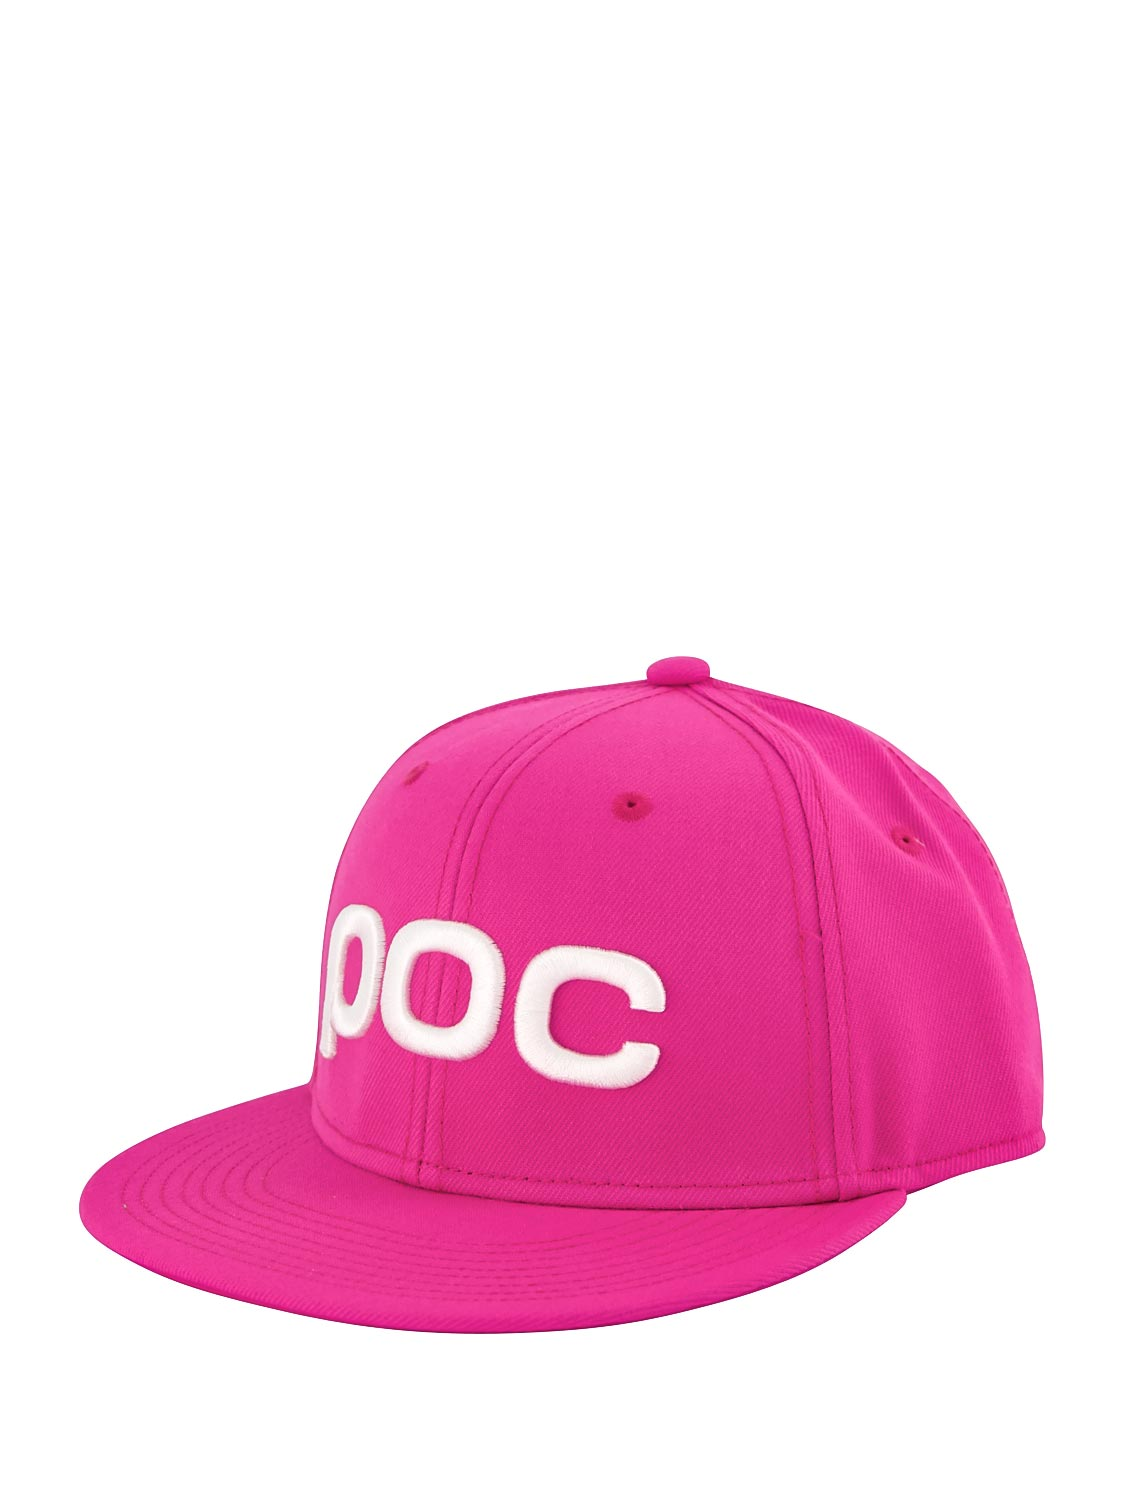 Poc Kids' Corp Cap Jr For Girls In Pink